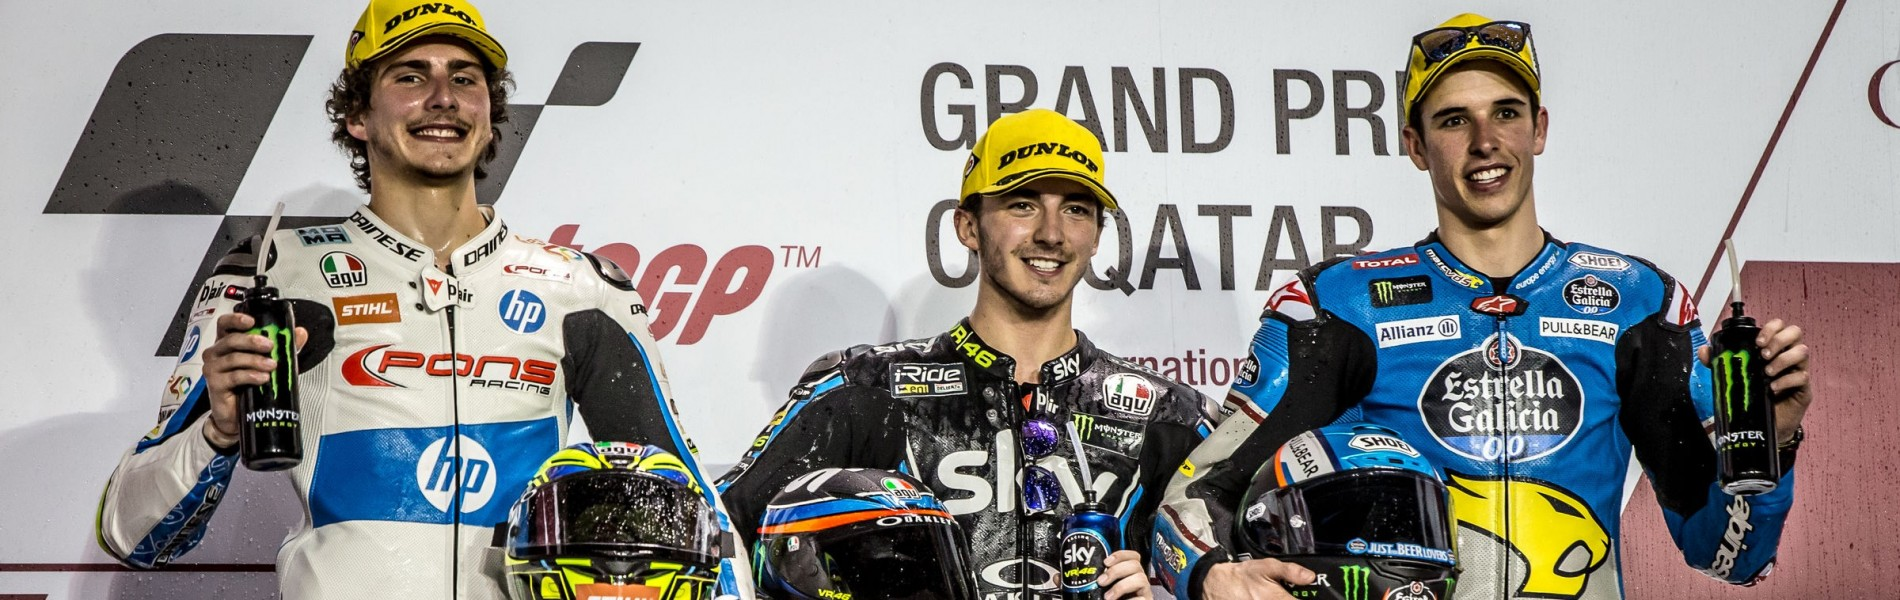 Moto2 podium at the 2018 GP of Qatar